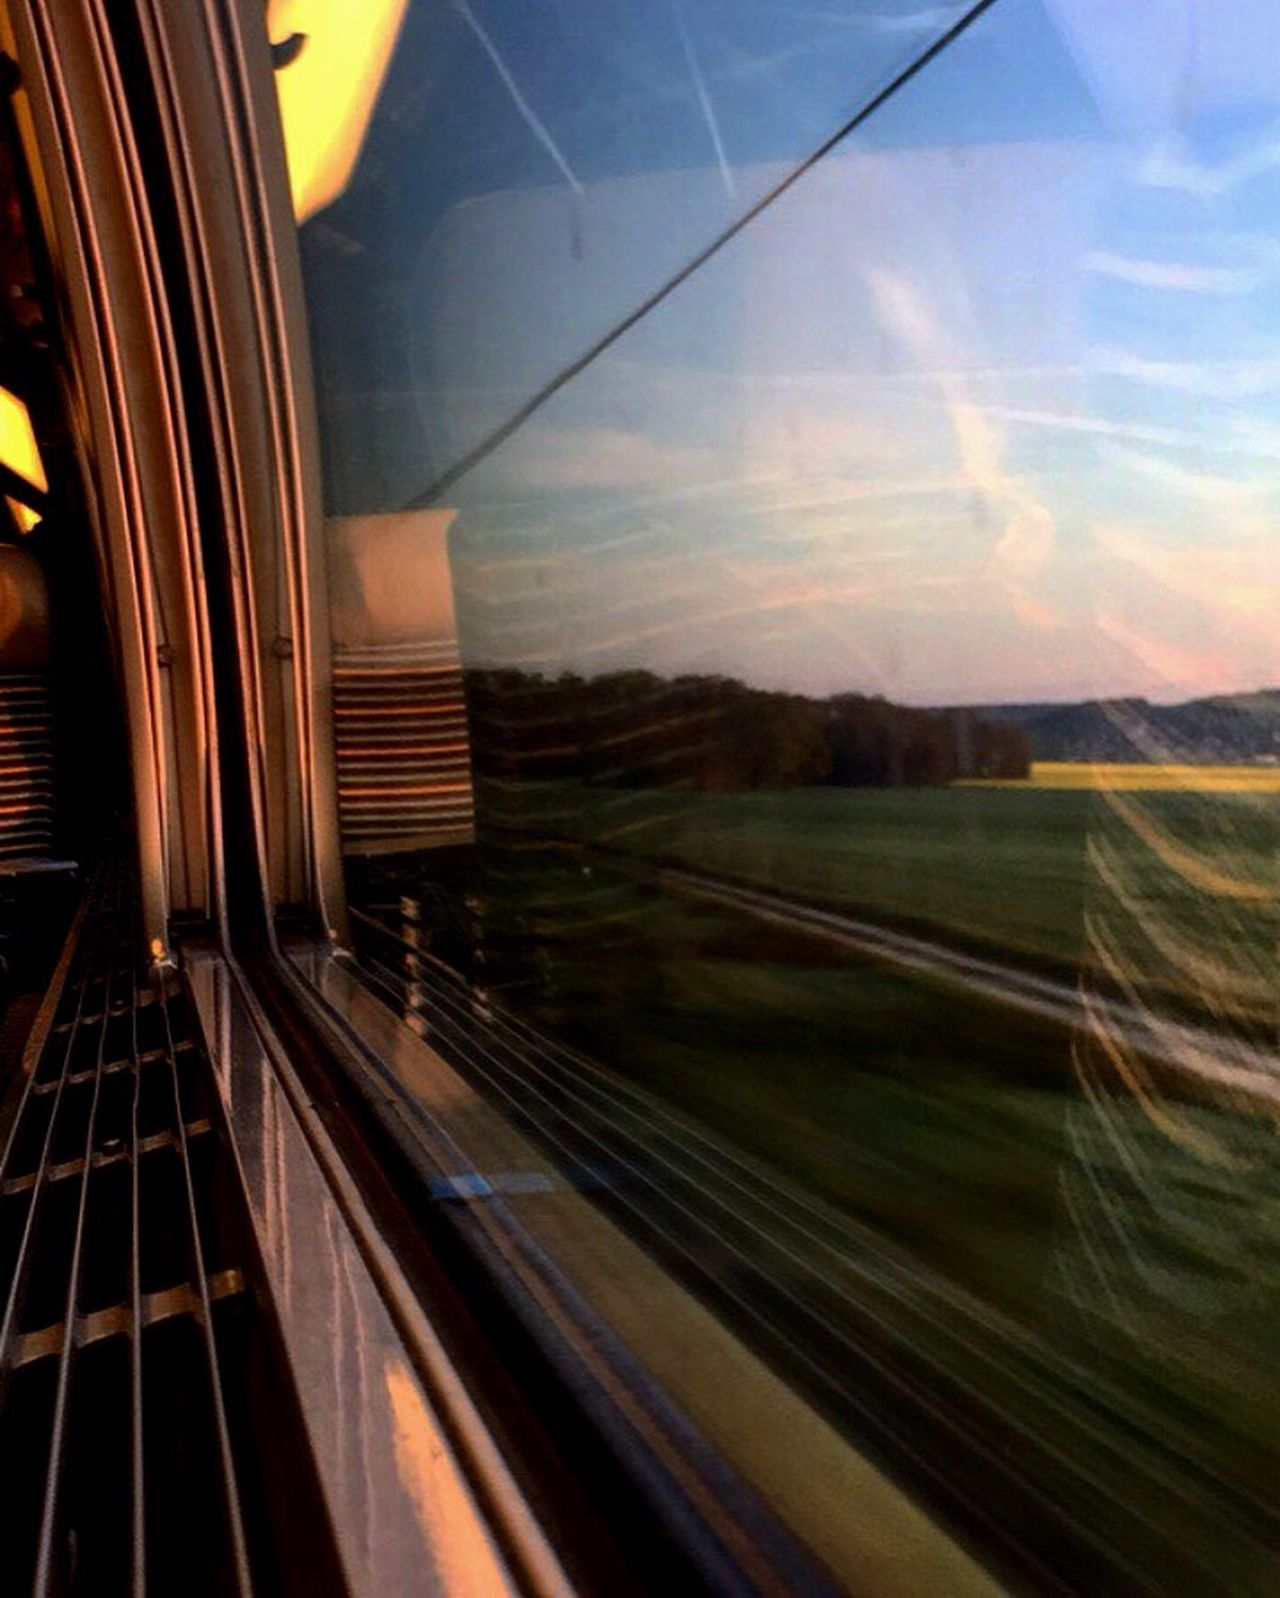 Train High Speed Sncf Highspeed TGV Transportation No People Sky Landscape Outdoors Nature Day Sunset Morning Sunny Traveler French Transportation Alstom Sncf Class Beautiful View Window